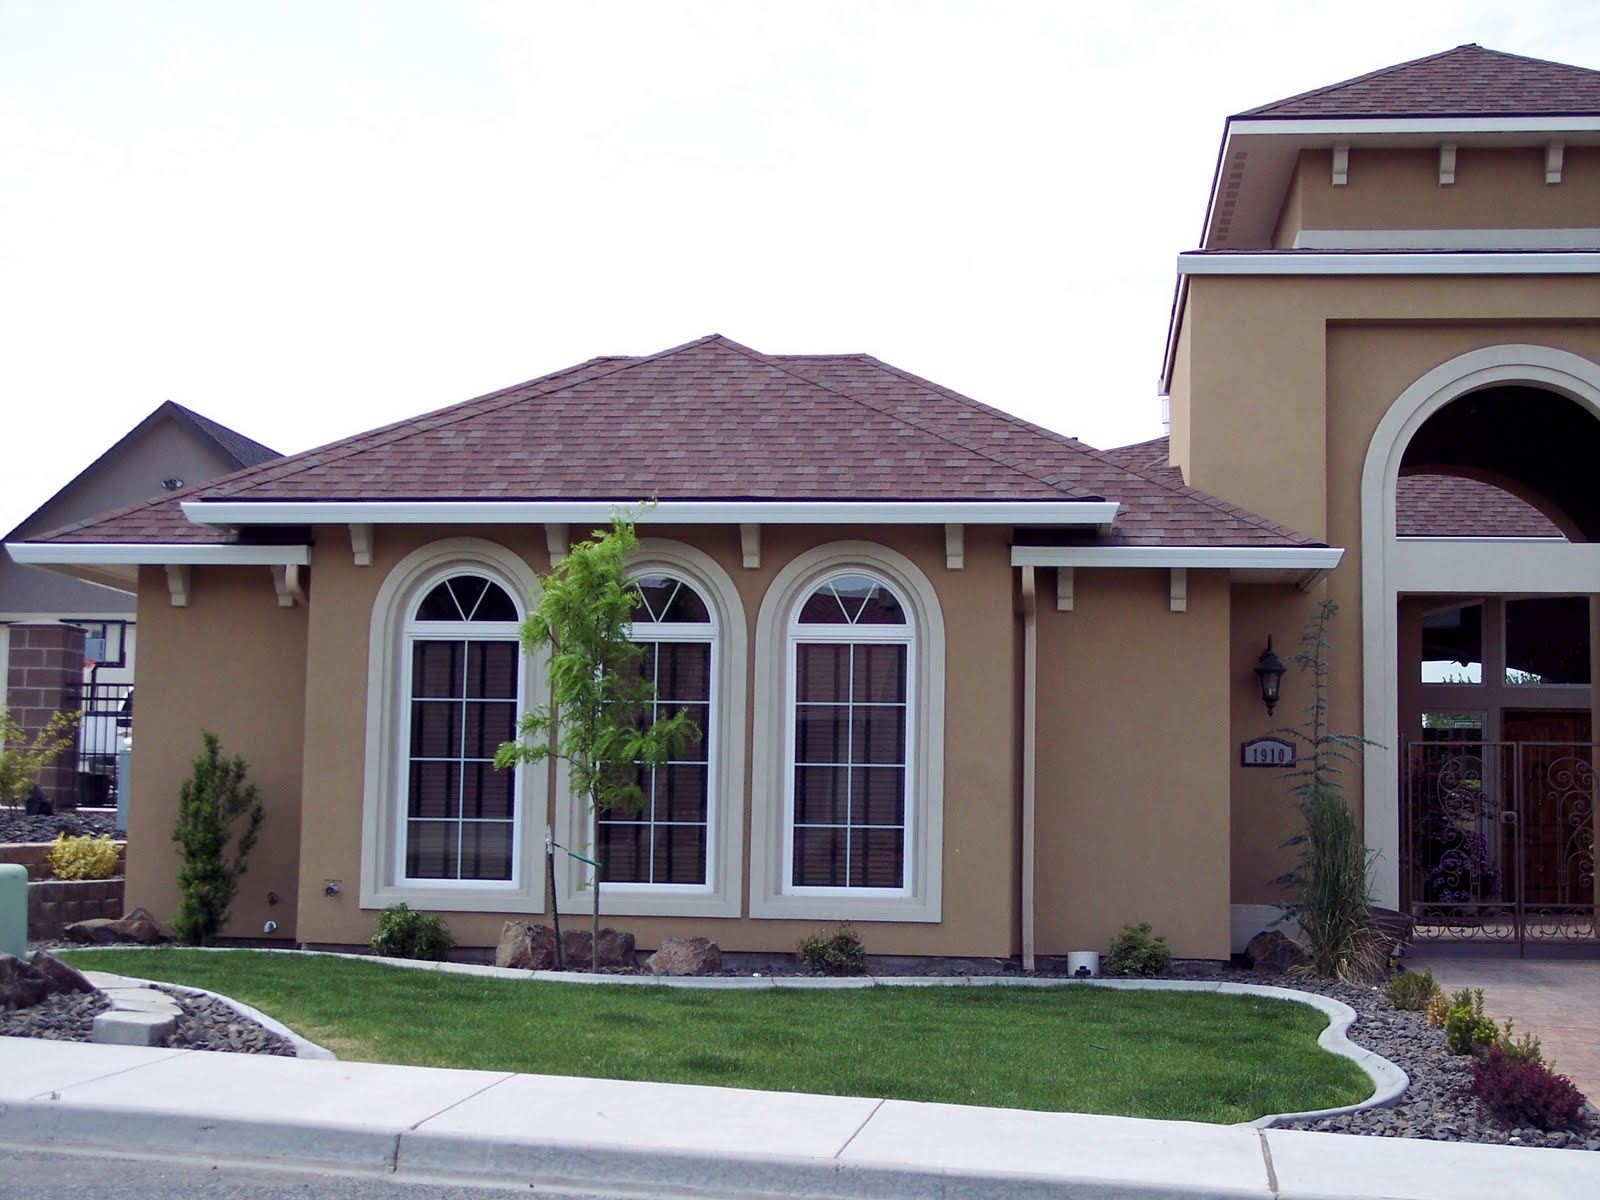 Architectural House Design With Brown Roof And Arched White Window Bar Green Landscape